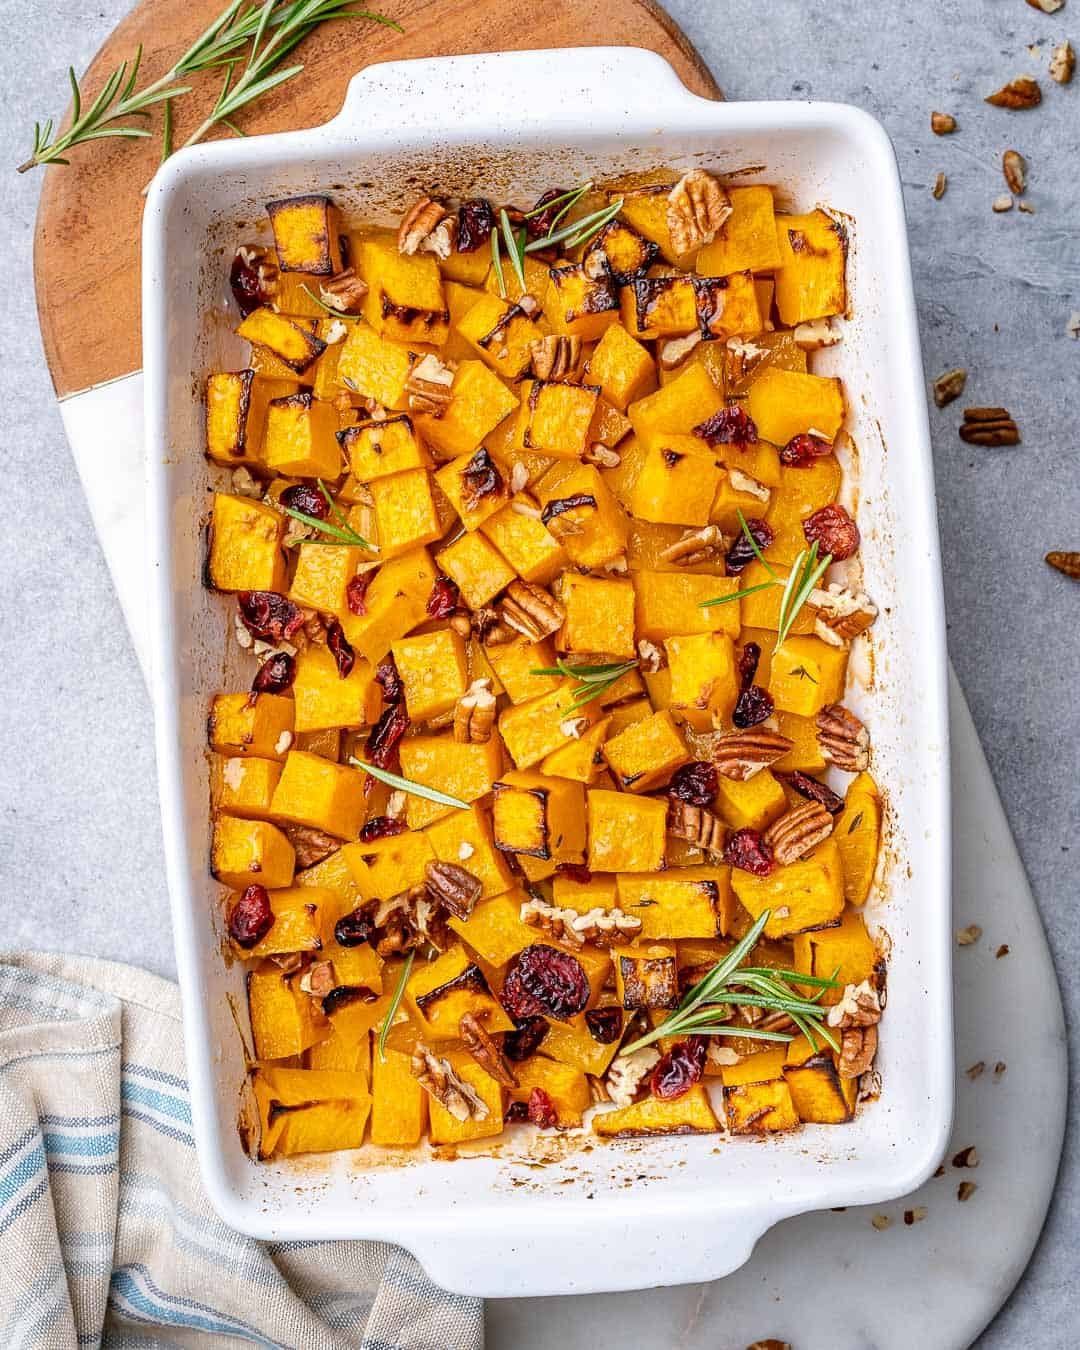 White baking dish with roasted butternut squash, pecans, and dried cranberries.